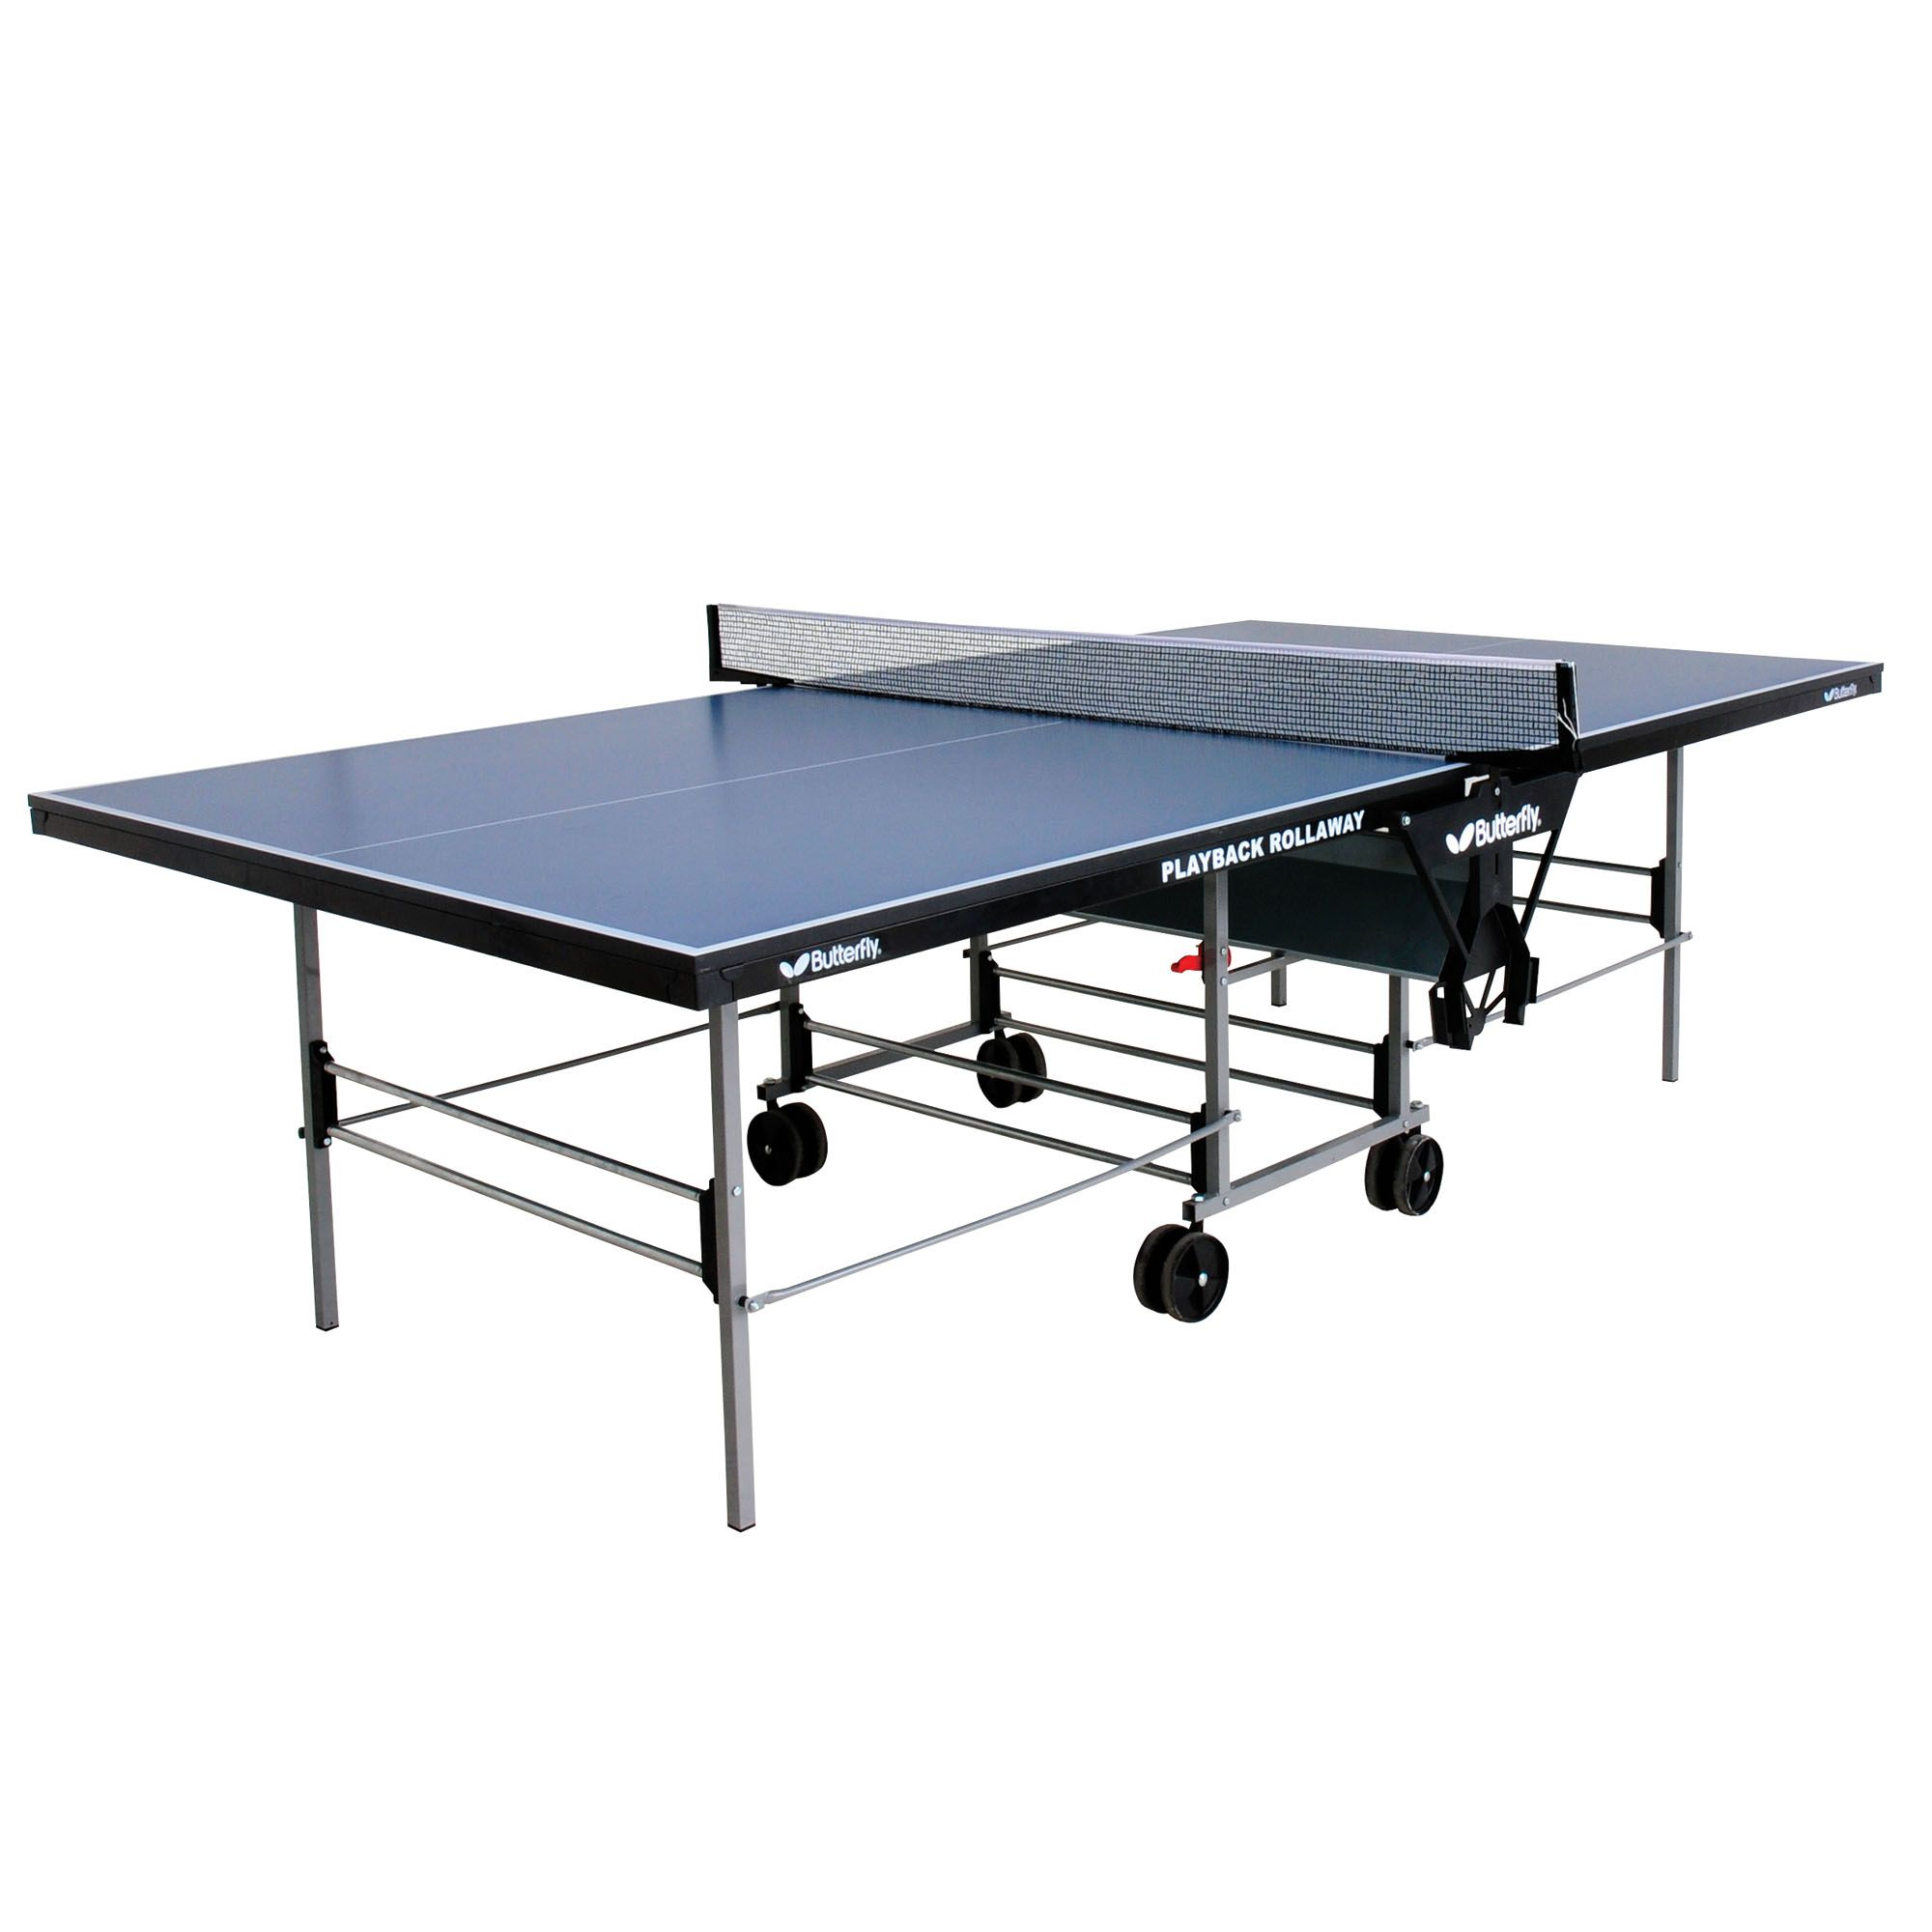 Butterfly playback rollaway table tennis table - Used outdoor table tennis tables for sale ...